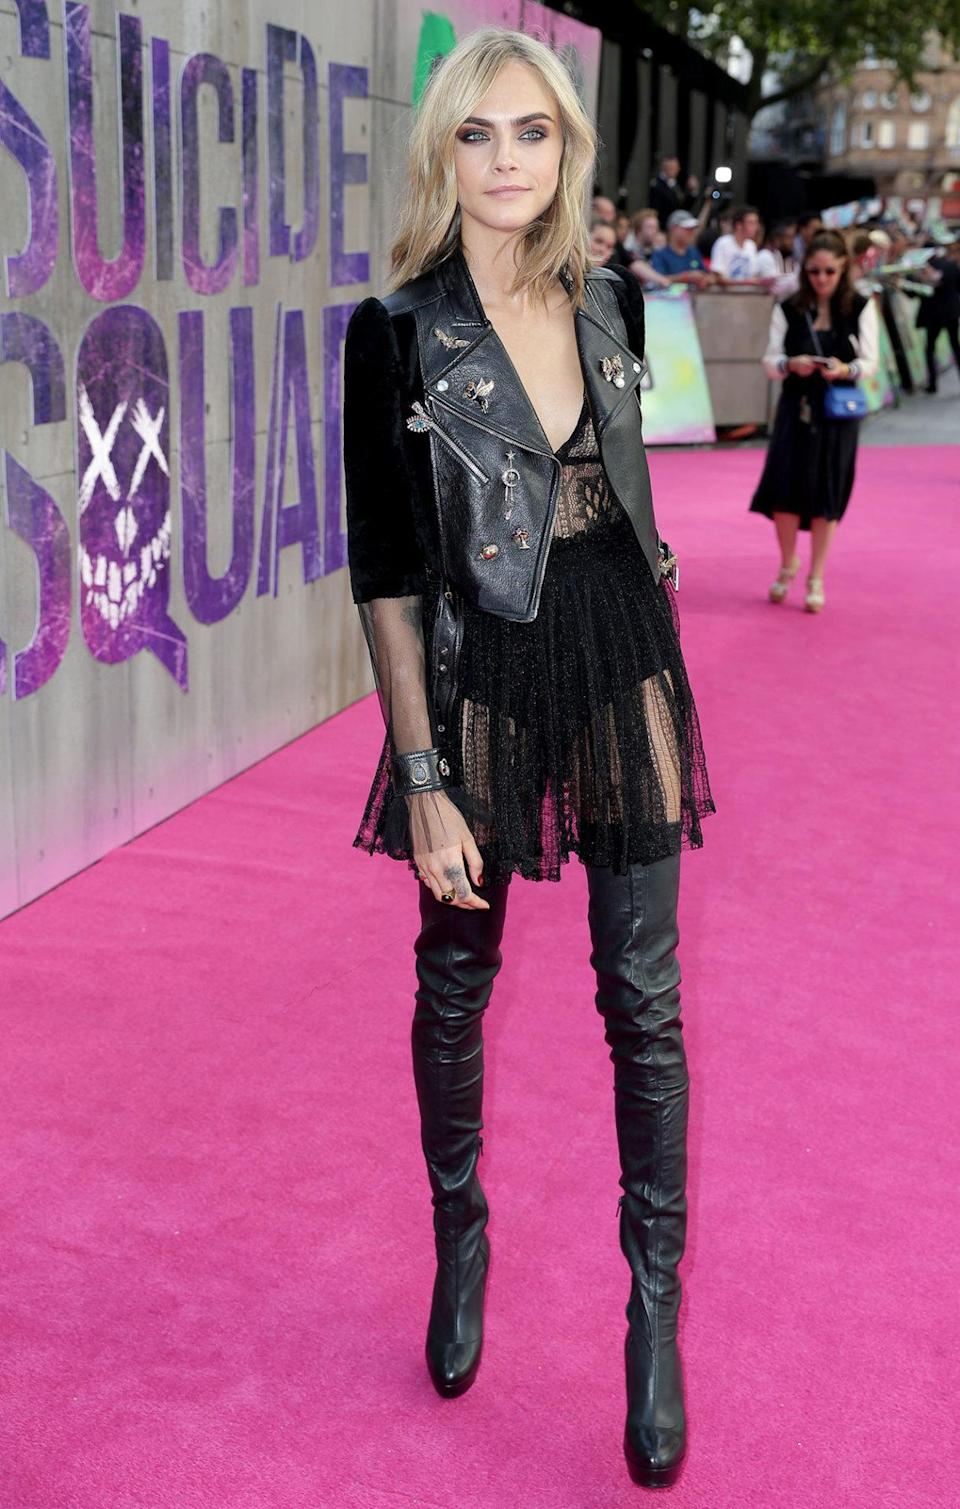 <p>The supermodel turned actress wore all-black for the glitzy premiere.</p>